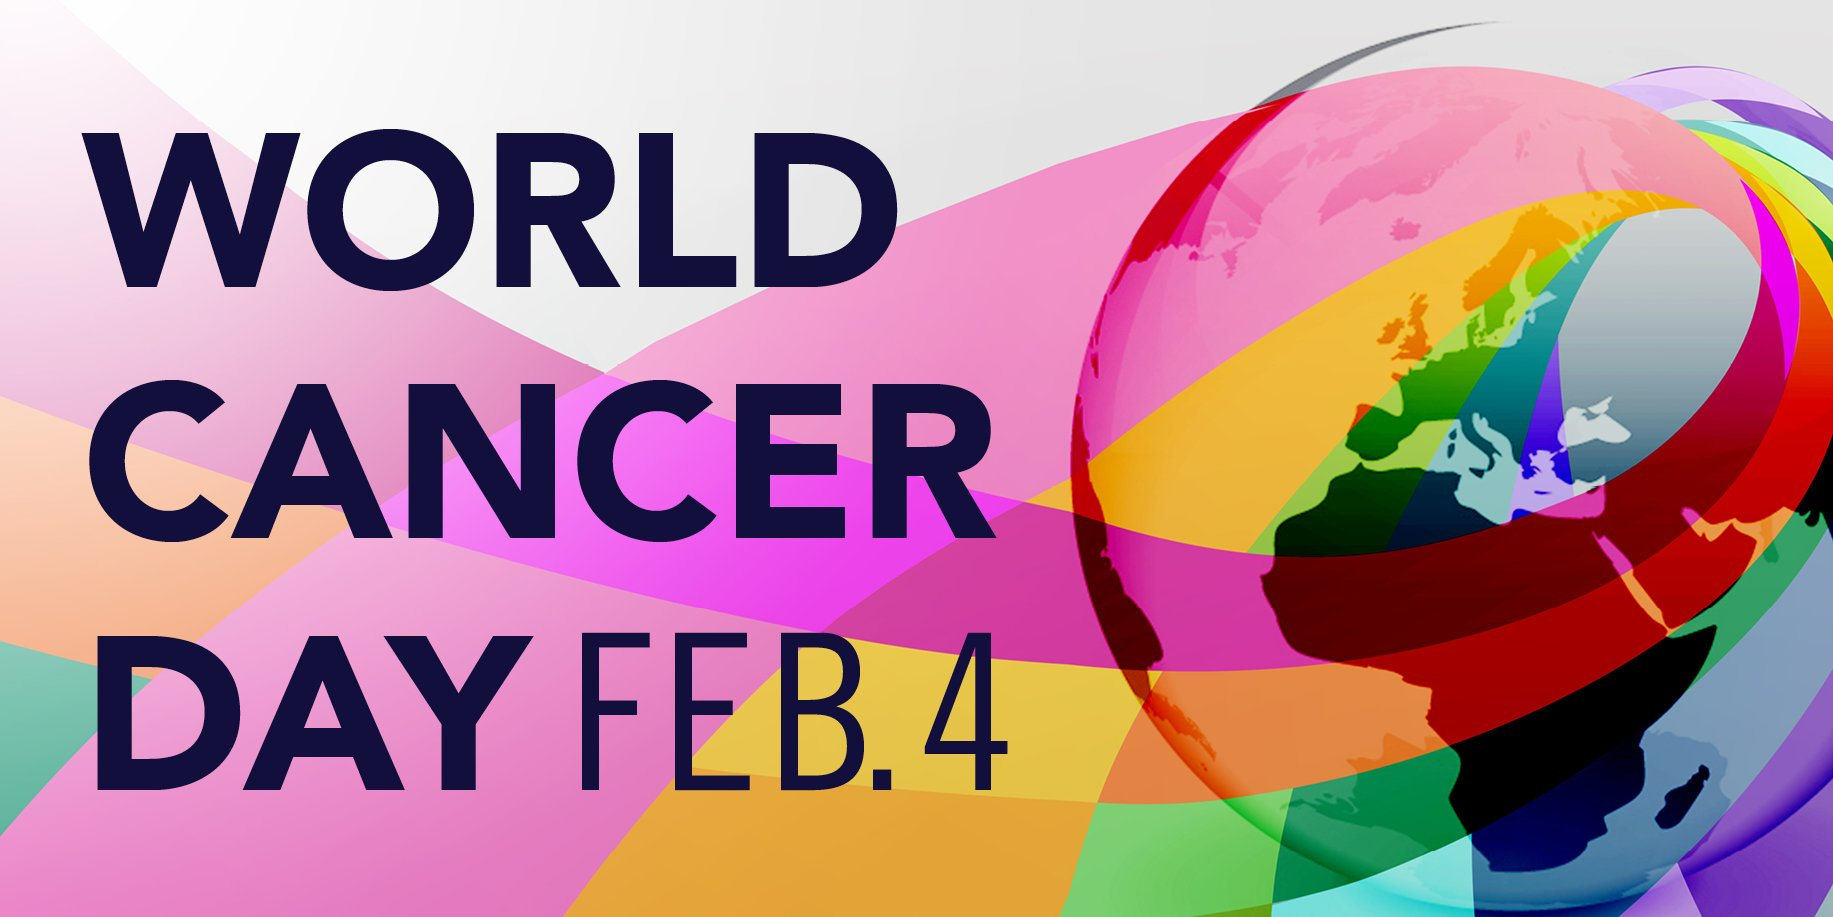 It's #WorldCancerDay. Make your actions count against #cancer. Tips to get involved: https://t.co/NSBjji19k5 https://t.co/8TvdlkPpxS